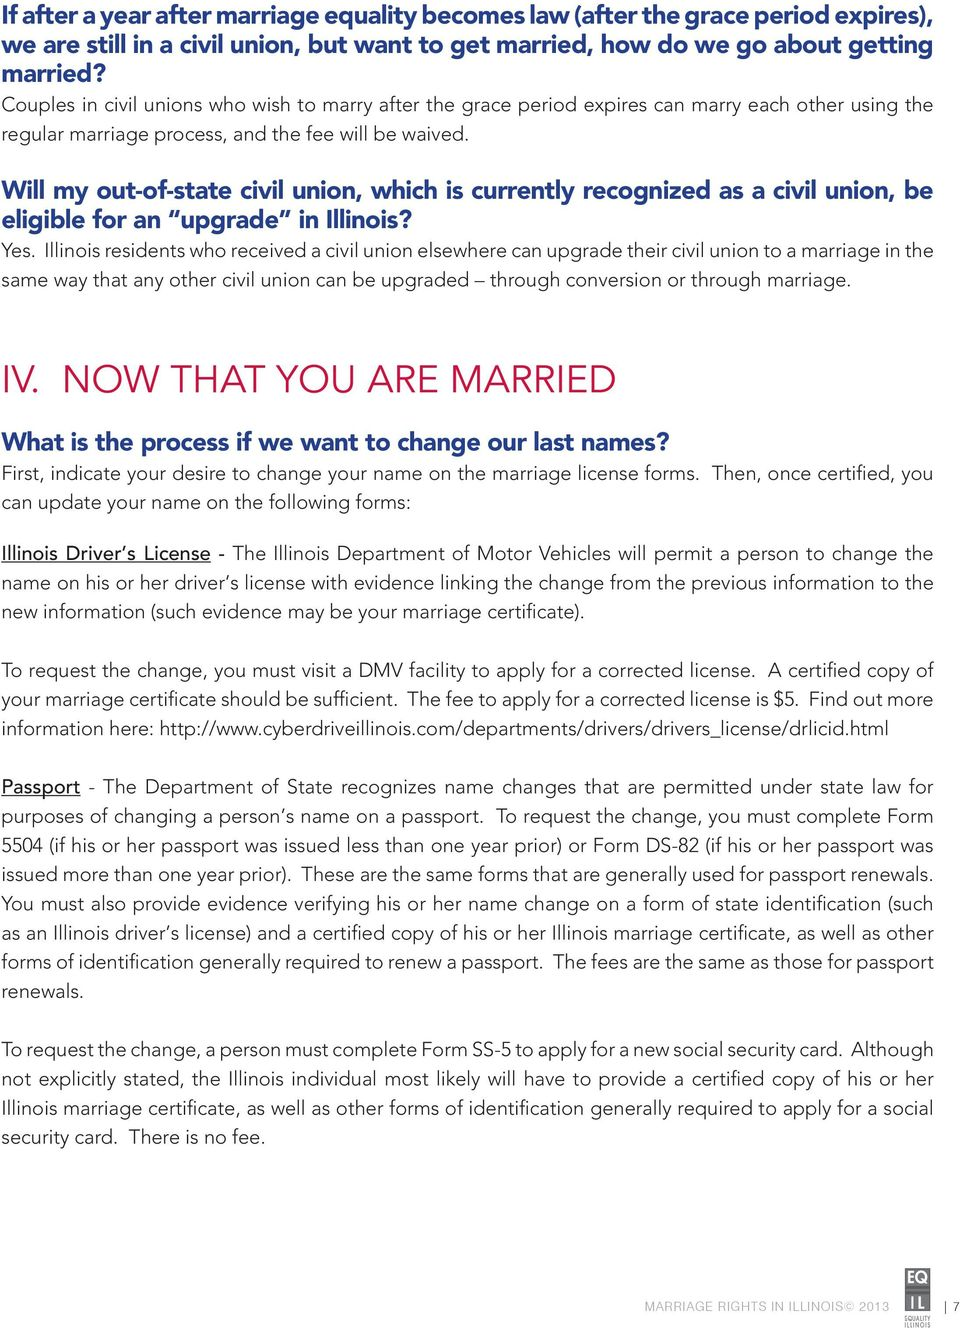 Will my out-of-state civil union, which is currently recognized as a civil union, be eligible for an upgrade in Illinois? Yes.